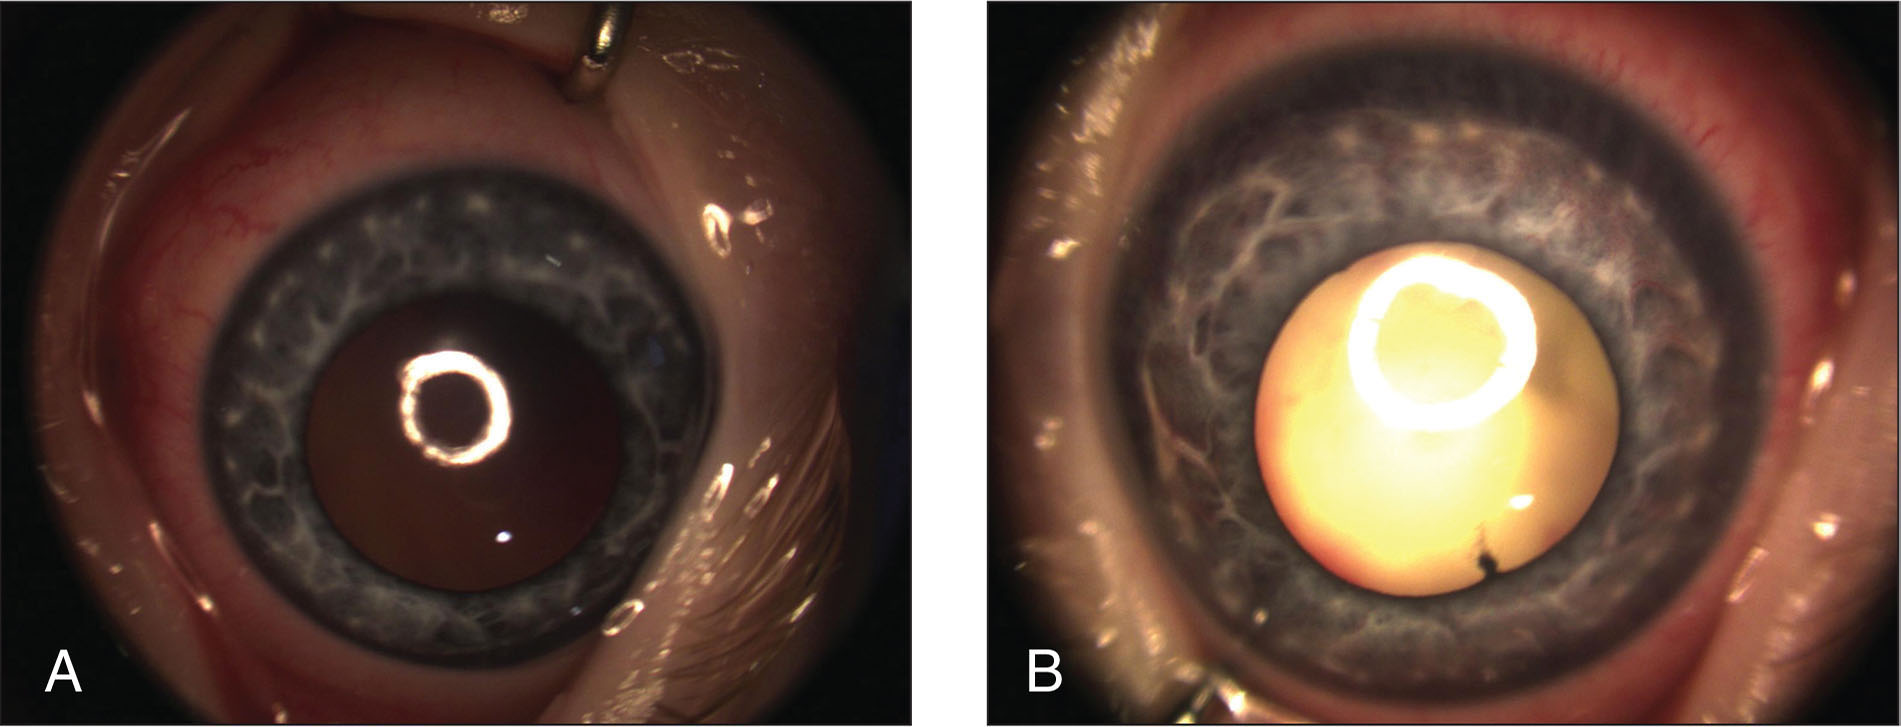 Anterior segment photograph of (A) the right eye showing iris Brushfield spots and (B) the left eye showing iris Brushfield spots, engorged iris vessels, and a prominent retrolental white mass.